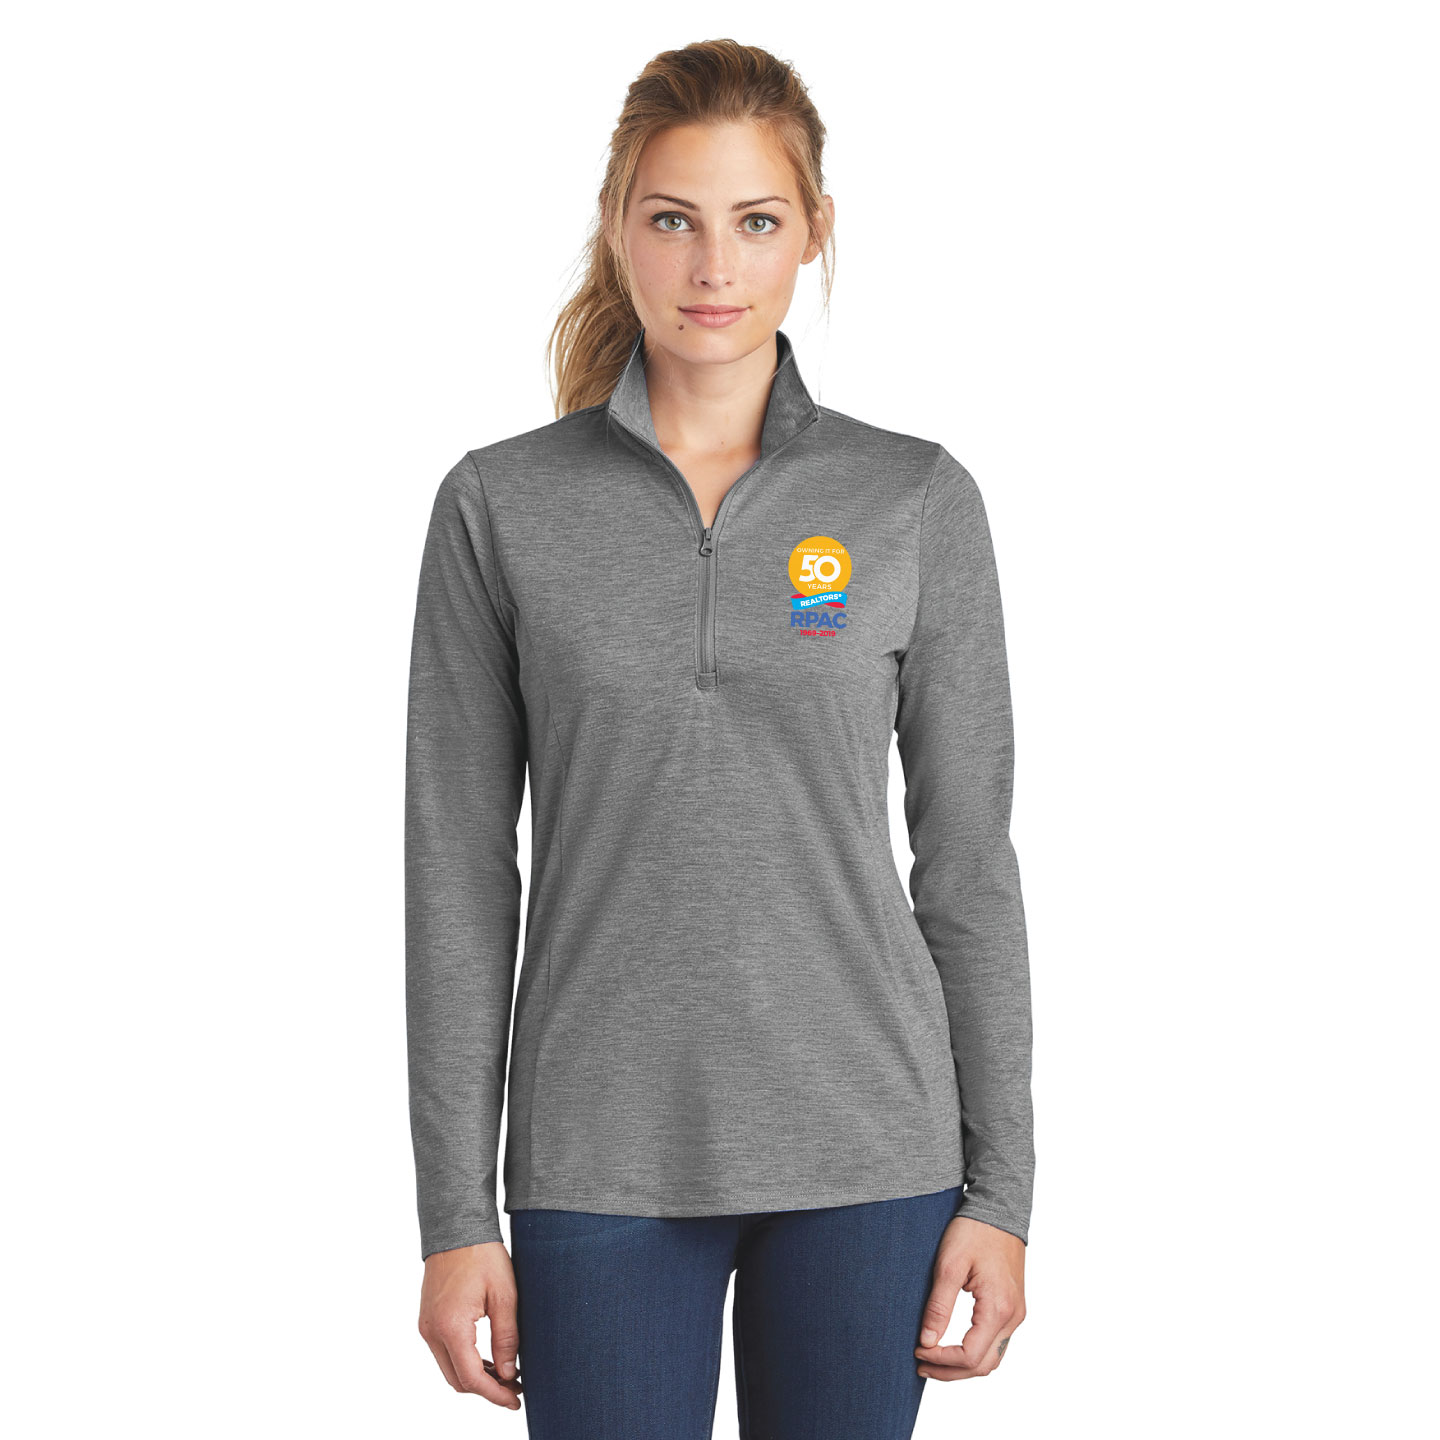 Ladies Sport Stretch 1/4 Zip Pullover RPAC Pullover,Fleece,Long Sleeve, RPAC, Fitness, Thumb, Gift, Best Seller,